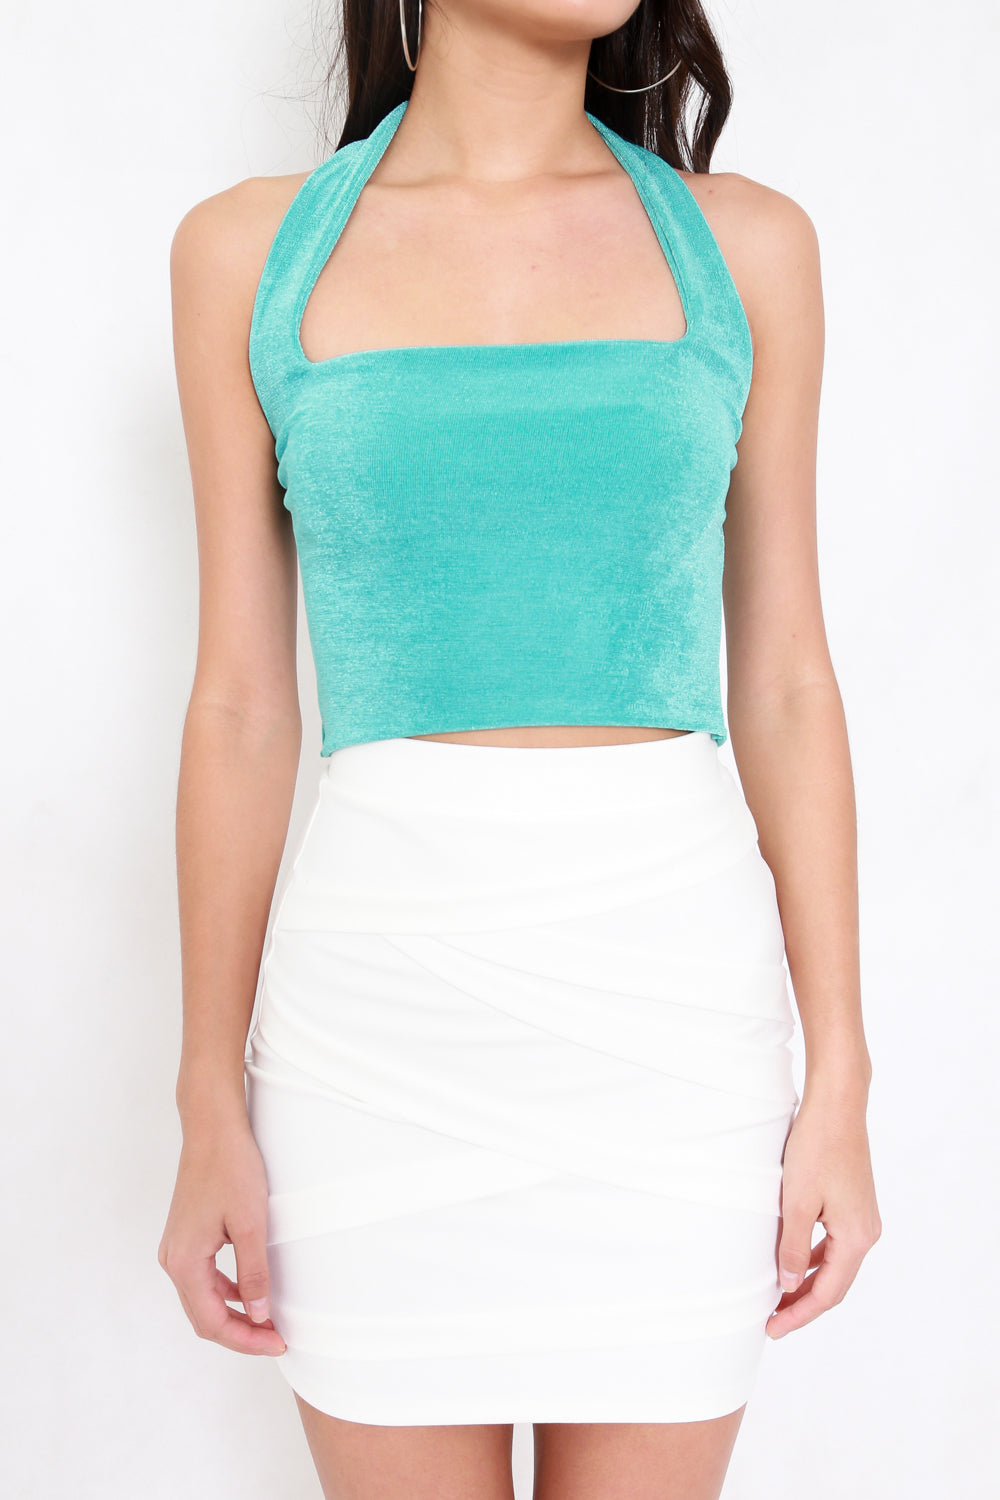 Adrianna Halter Top V2 (Turquoise)